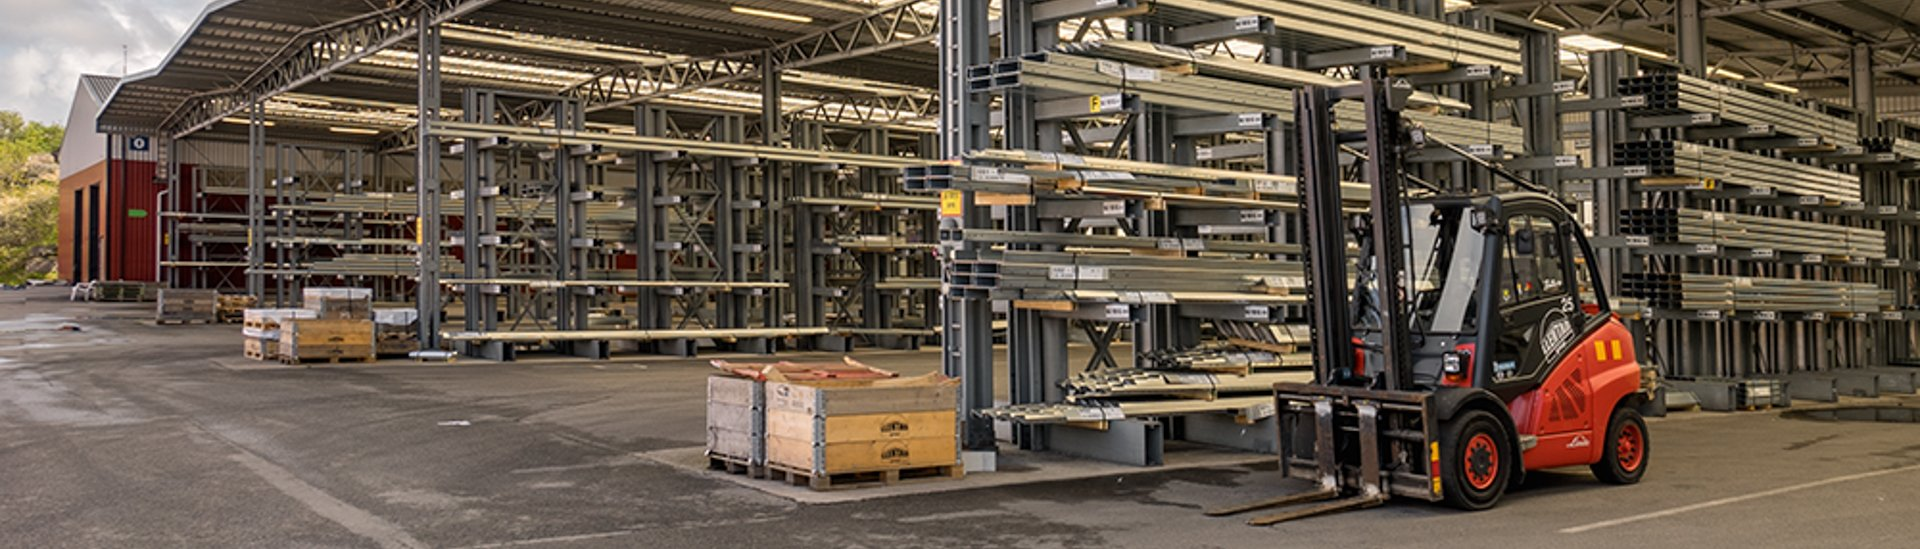 LLENTAB steel profile storage in Kungshamn